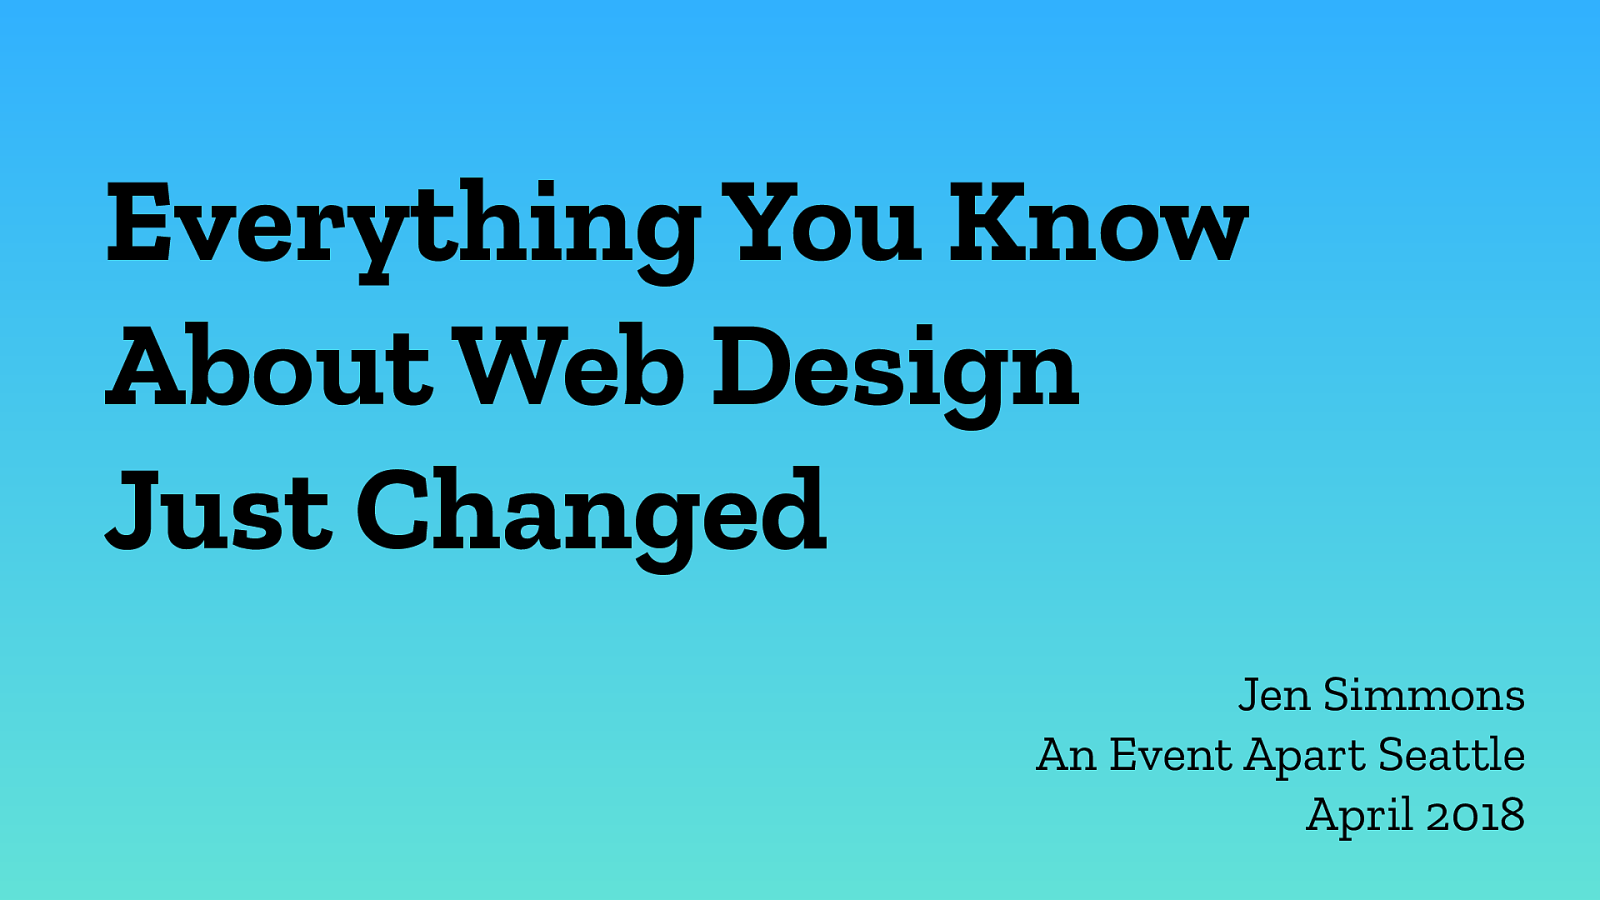 Everything You Know About Web Design Just Changed by Jen Simmons